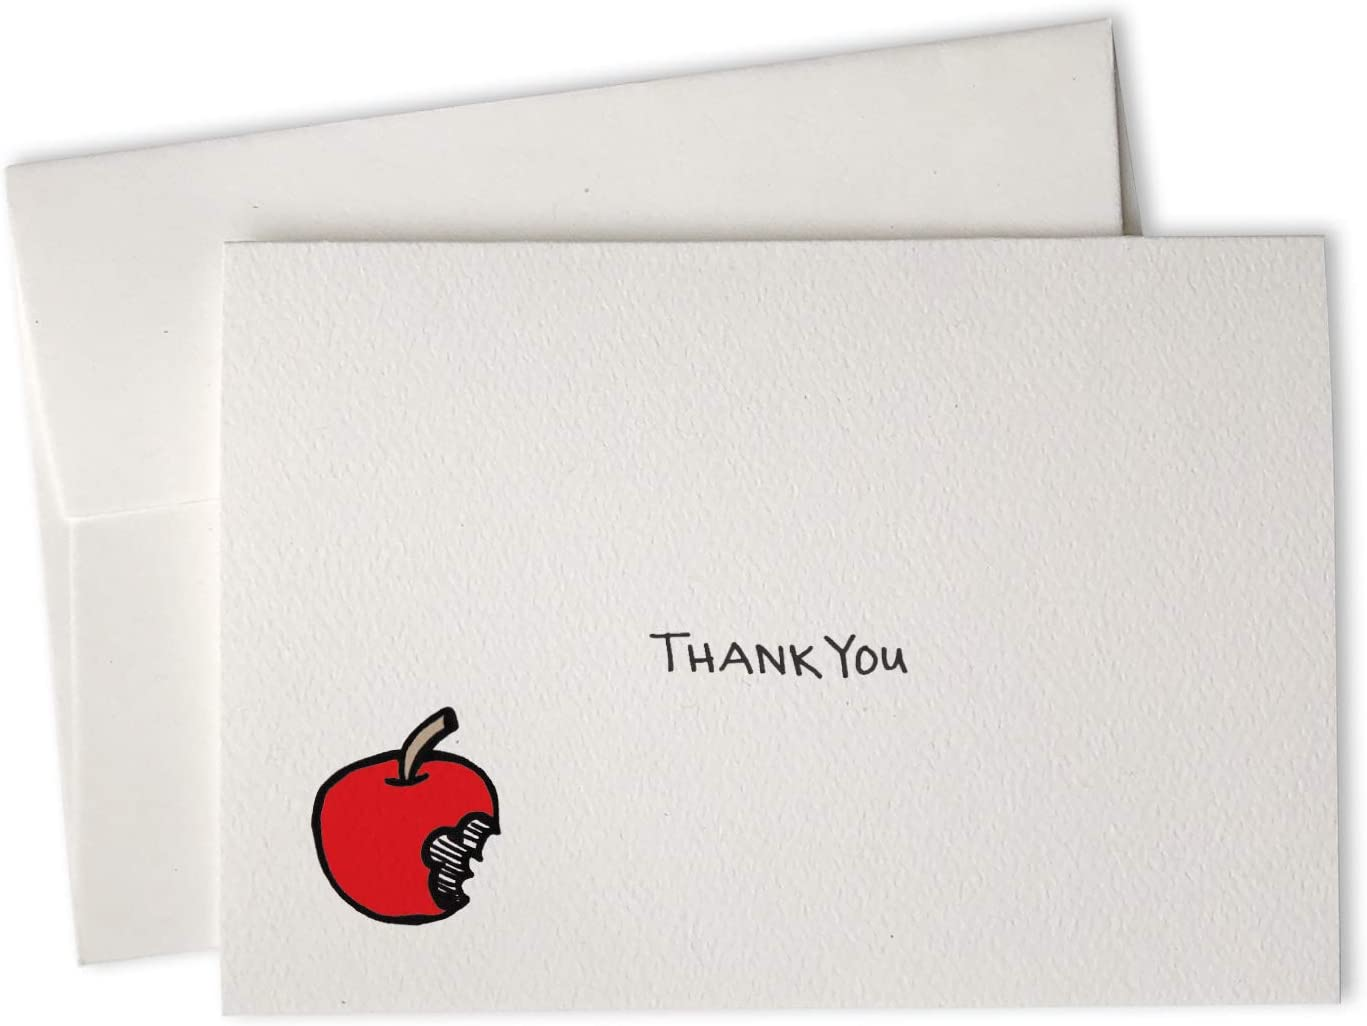 Bitten Apple Thank You Cards - 24 Cards with Envelopes